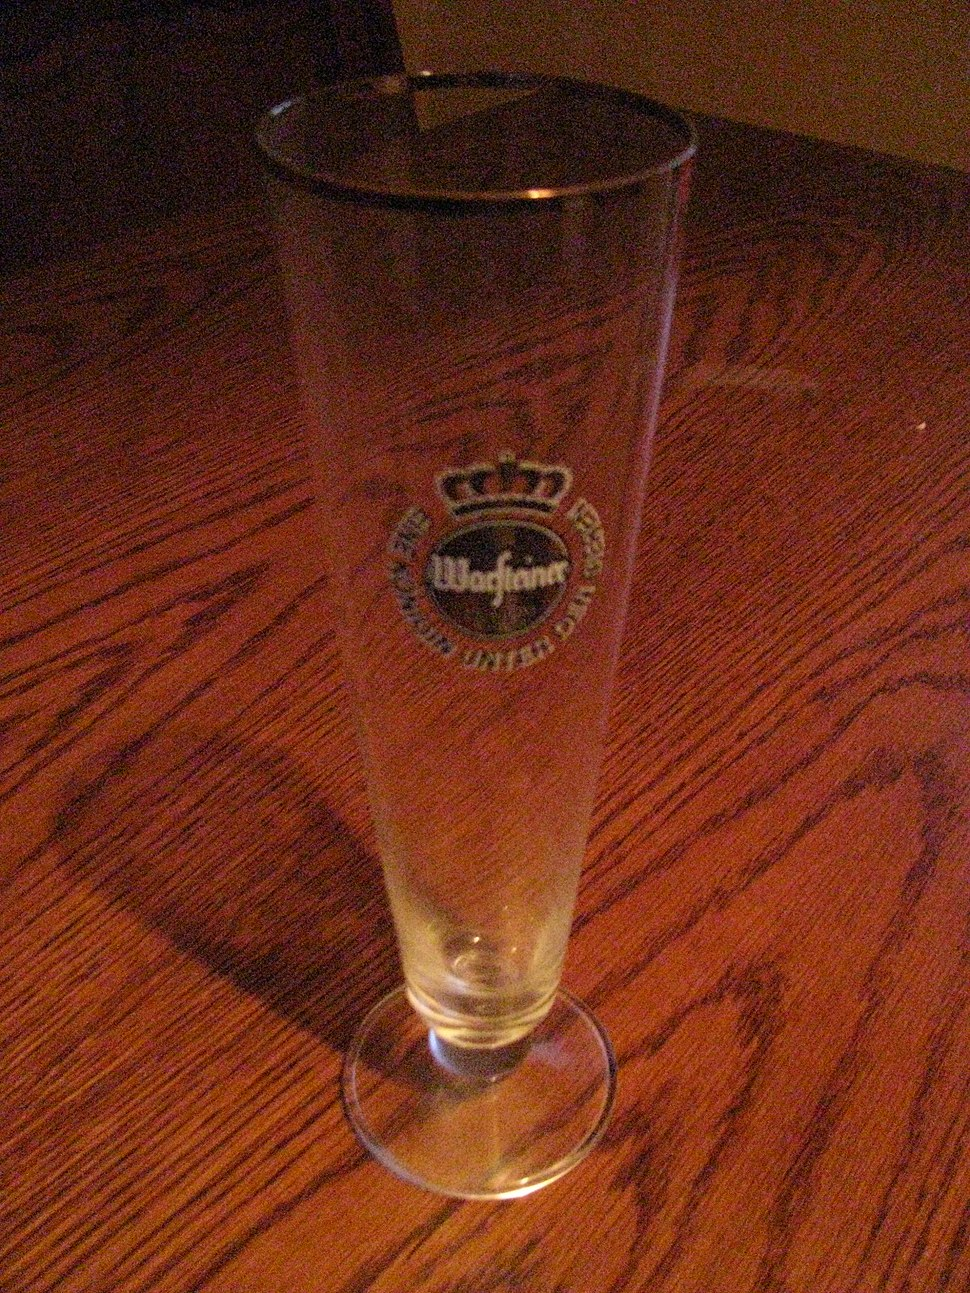 Warsteiner glass